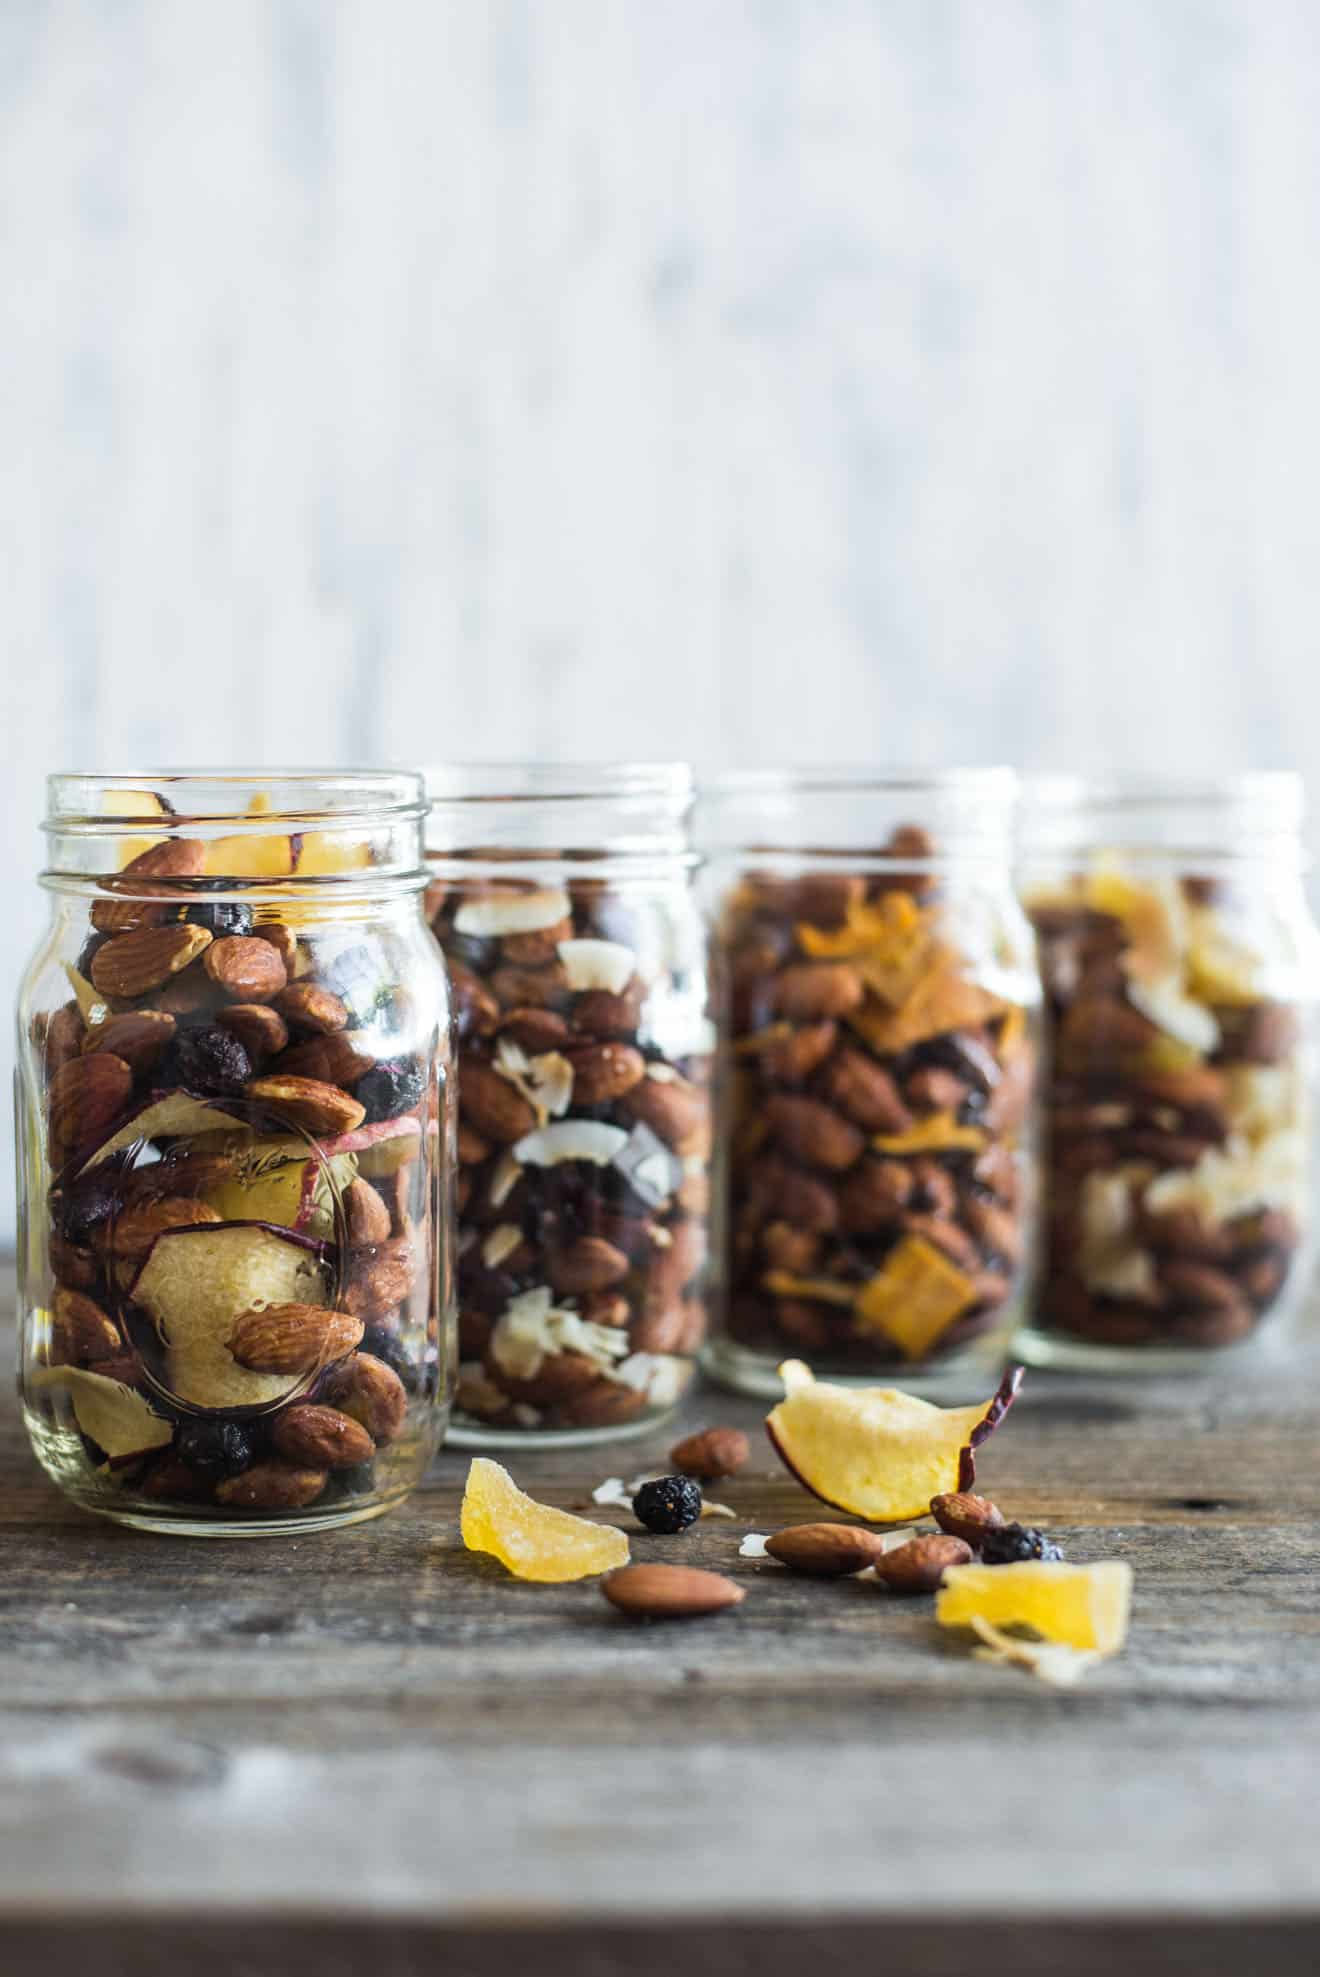 4 Easy Trail Mix Recipes with Almonds - here's 4 healthy snacks that you can make at home! They're gluten free and take only 15 minutes to prepare! by @healthynibs